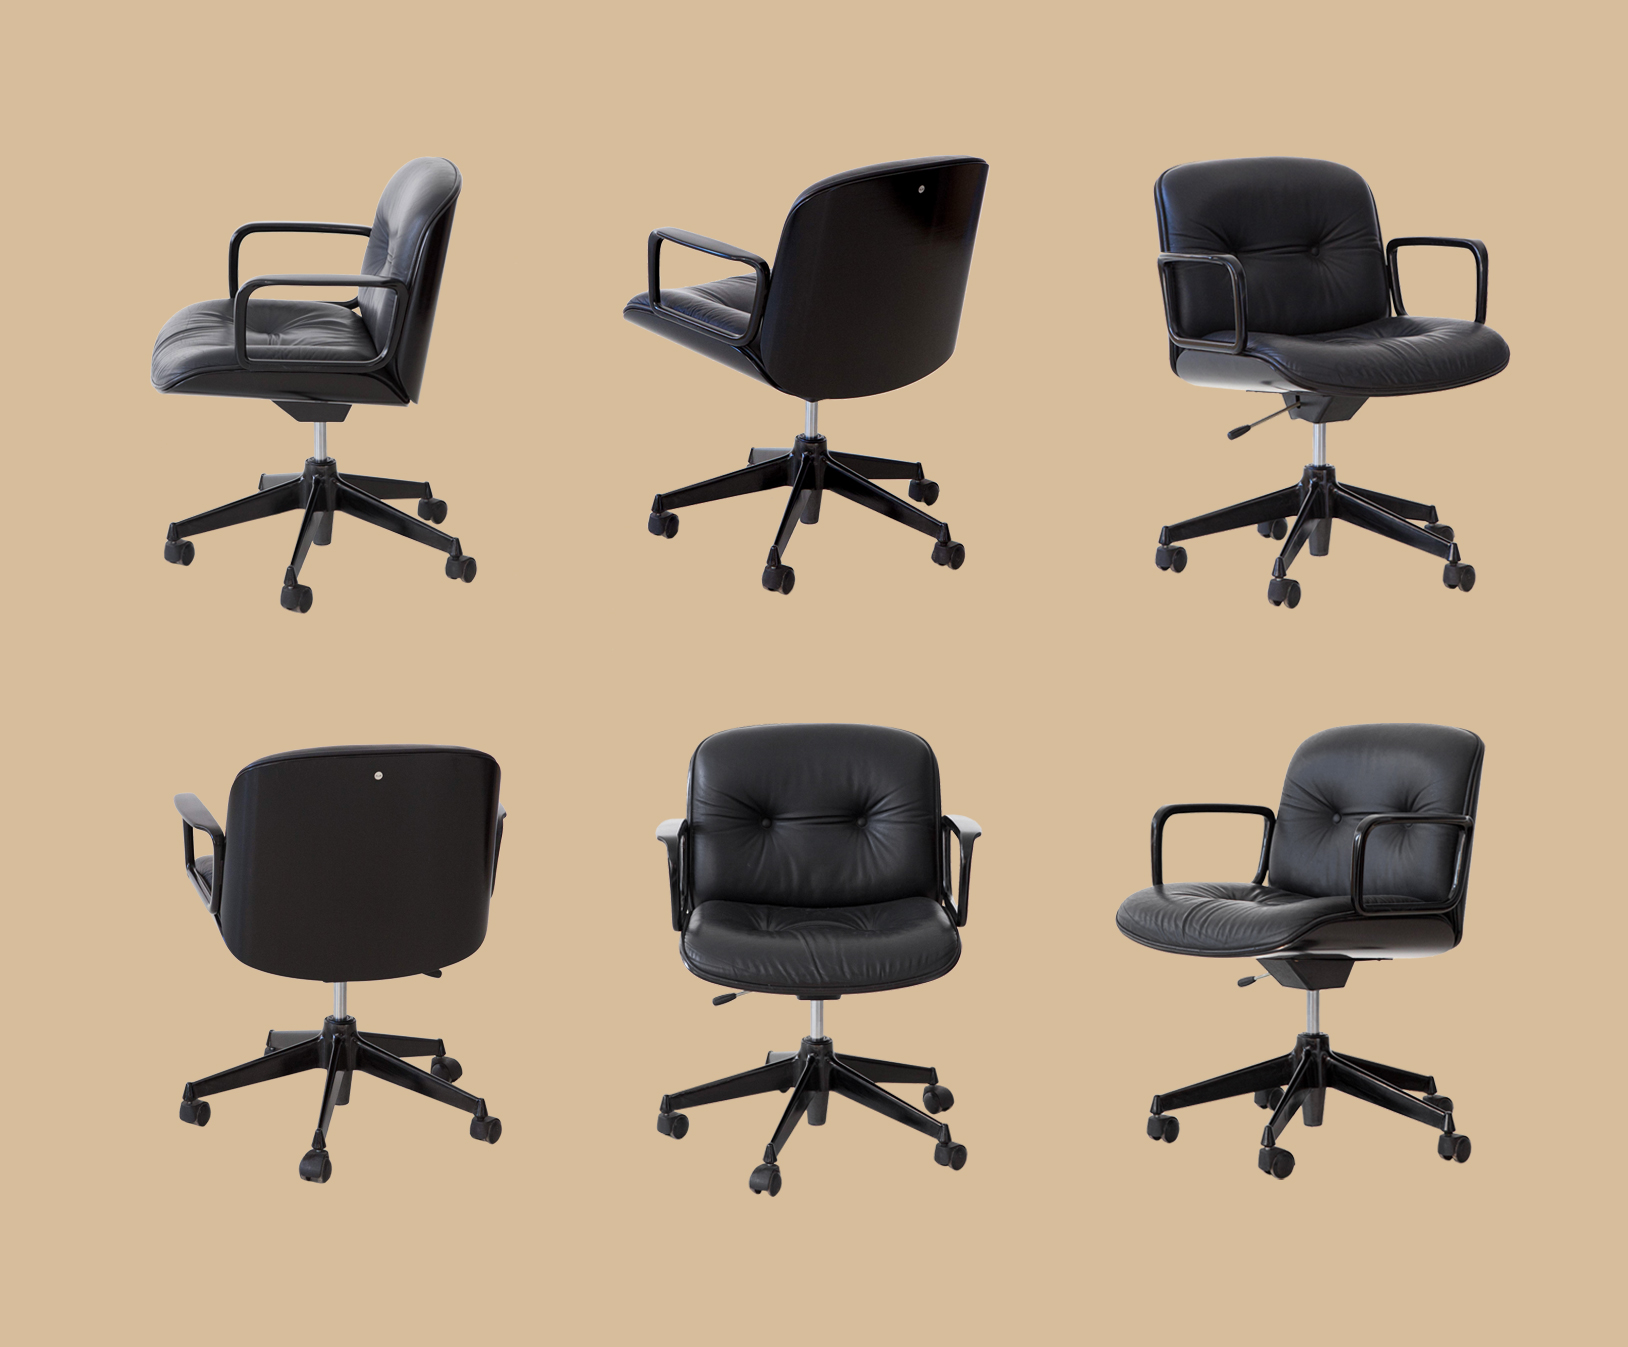 1960s-black-leather-office-swivel-chairs-by-ico-parisi-tot2-se315